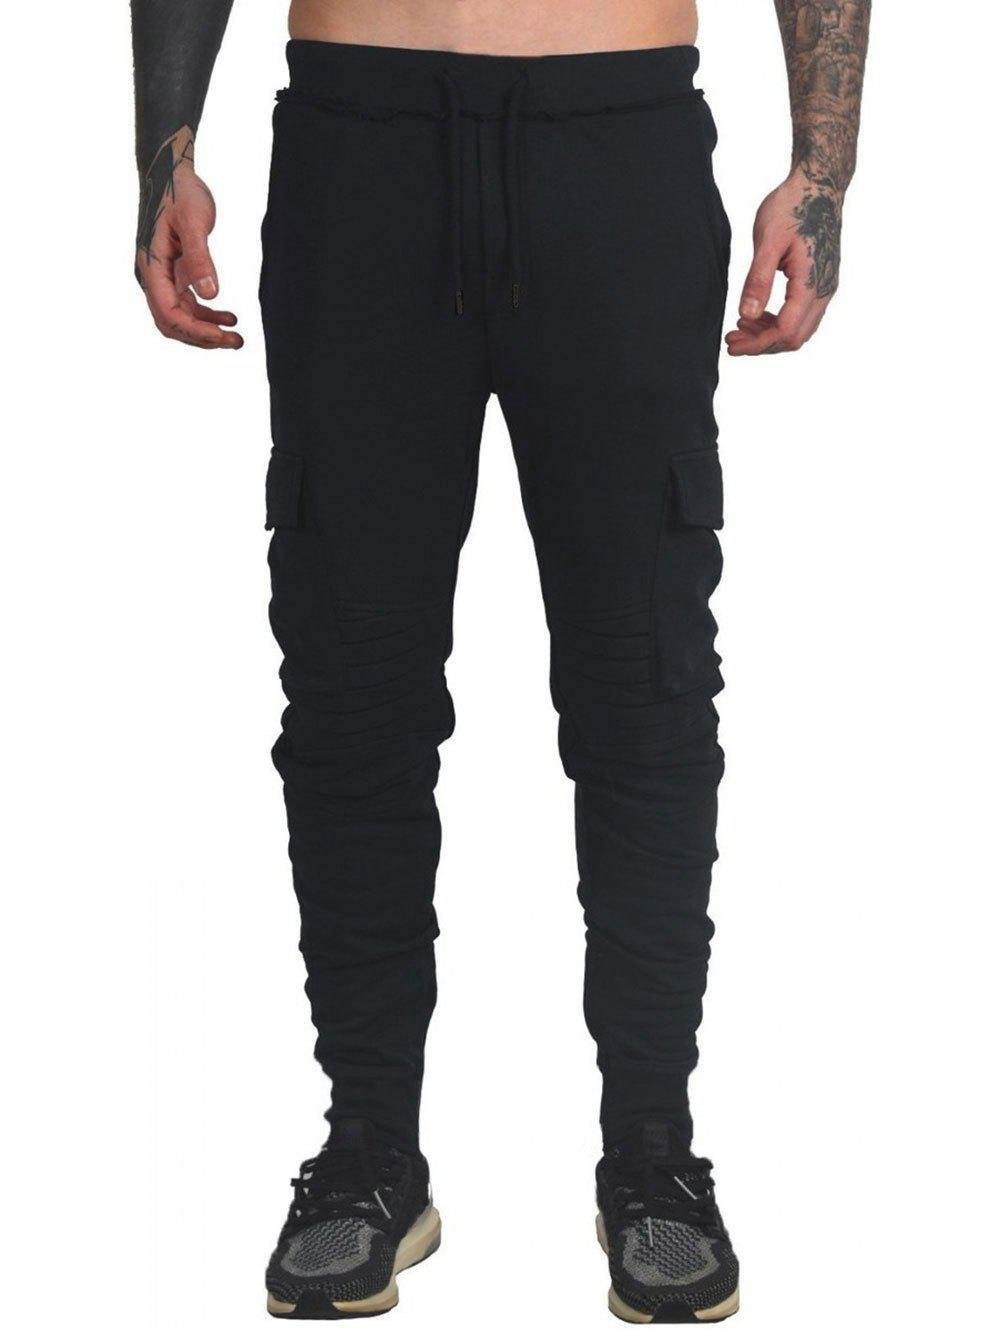 Shop Drawstring Ruched Tapered Sports Pants